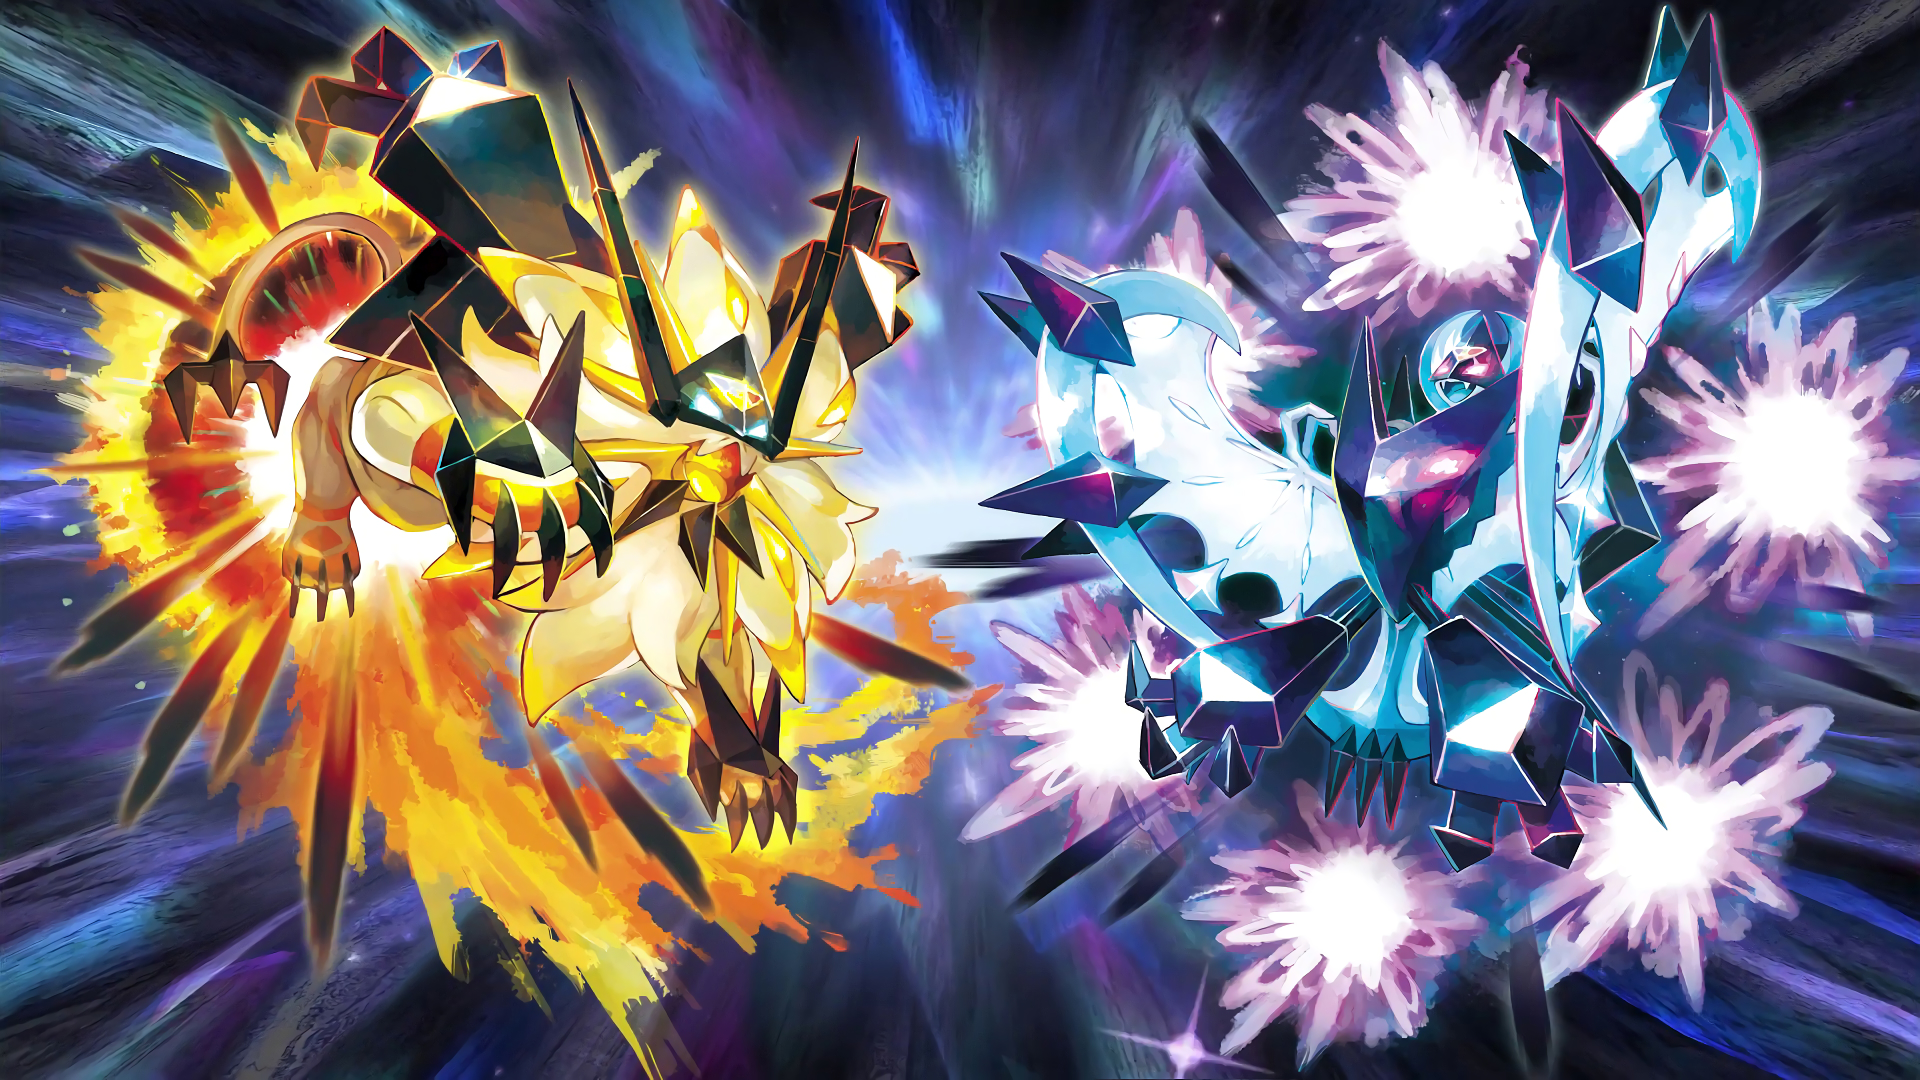 Pokemon Ultra Sun & Ultra Moon Wallpaper 4k Ultra HD